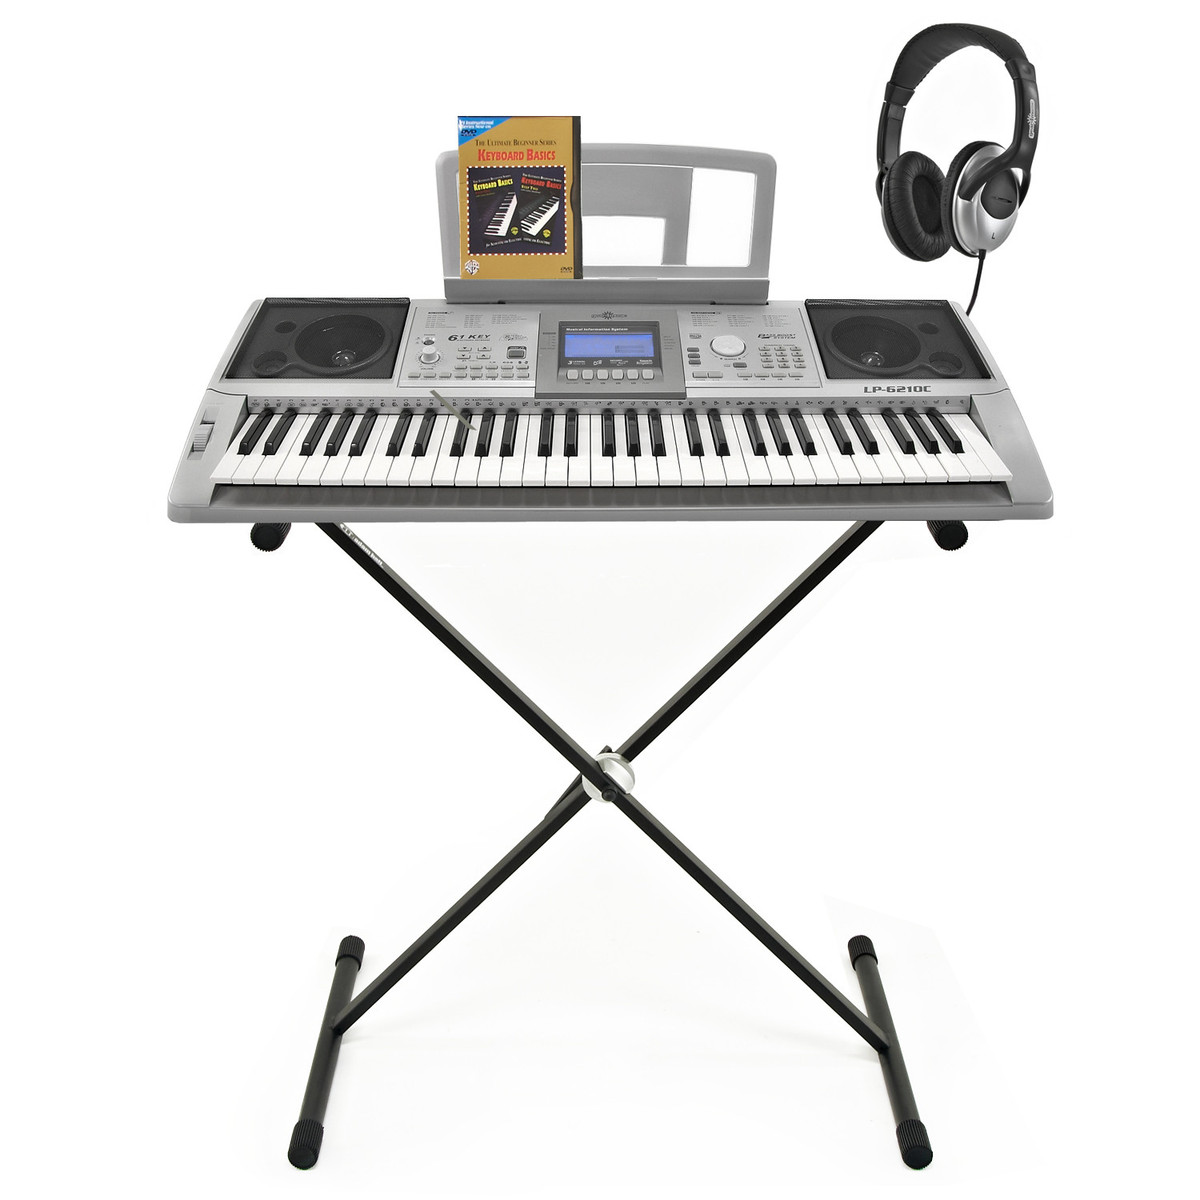 LP-6210C Electronic Keyboard by Gear4music + Accessory